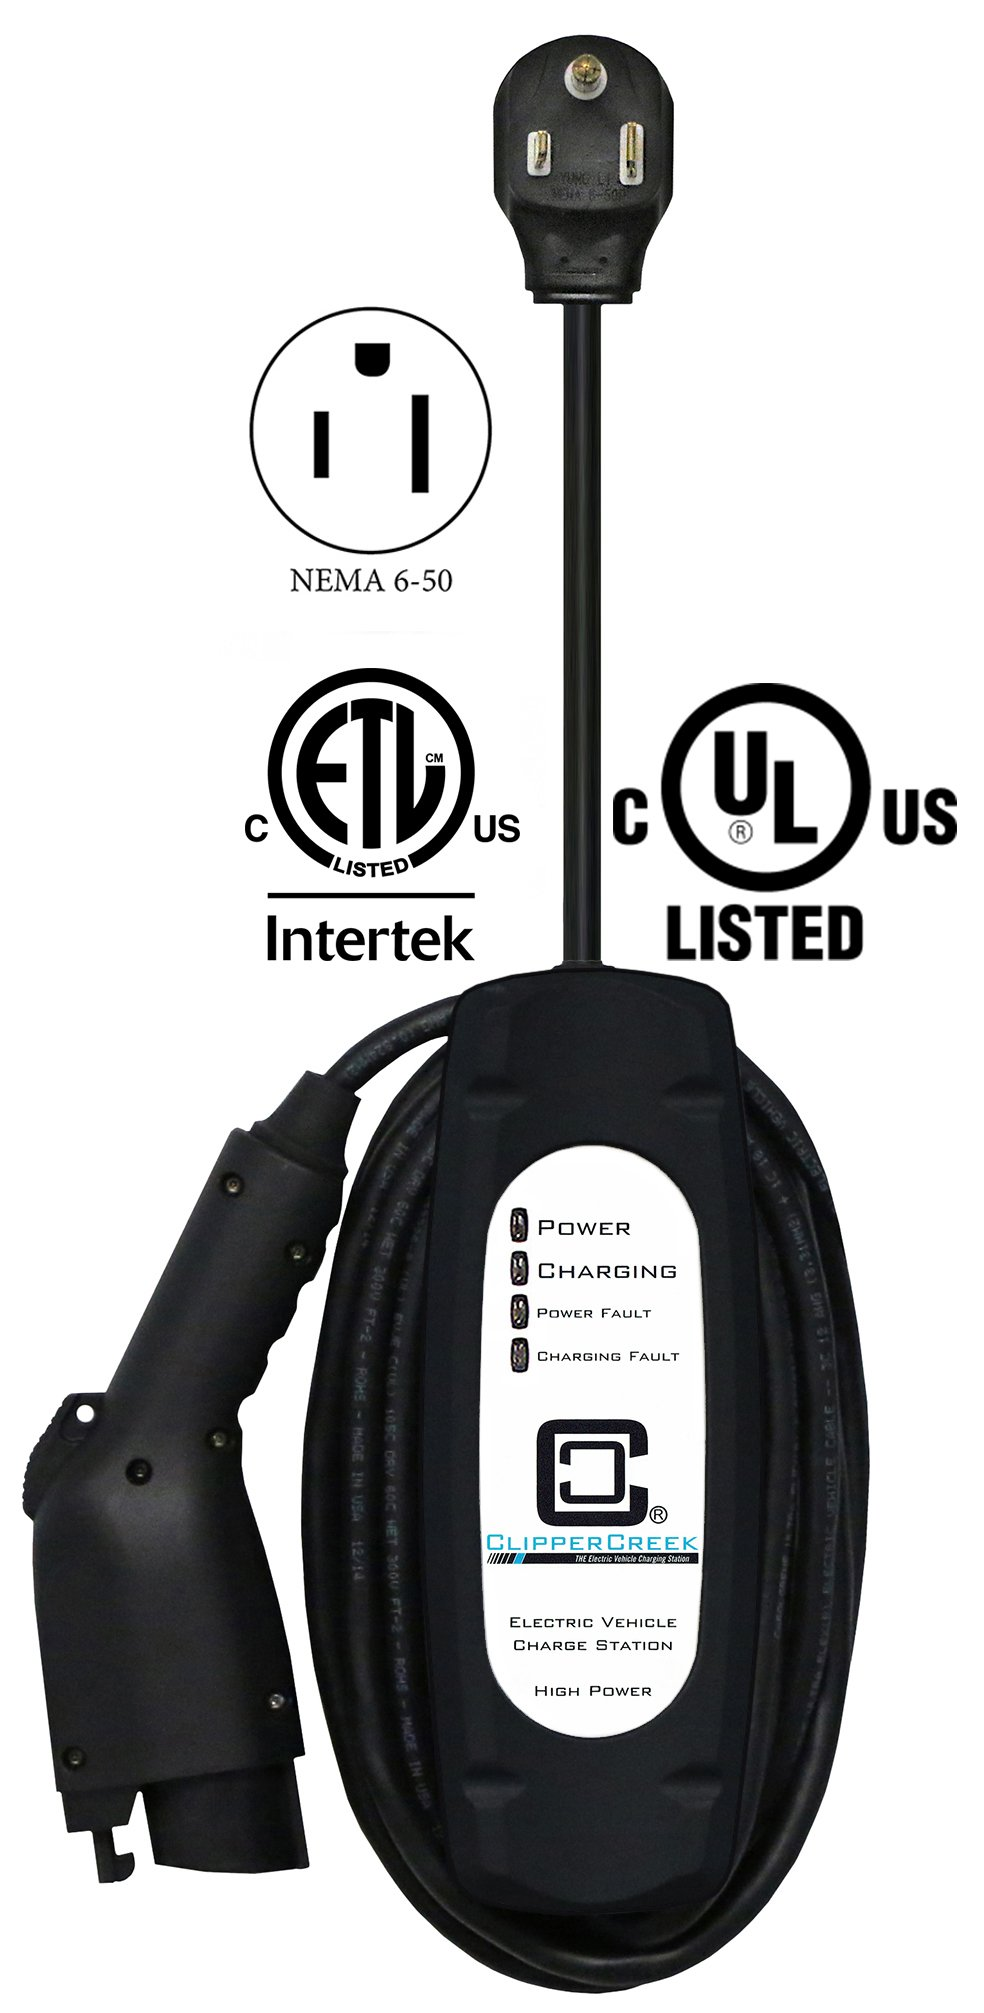 ClipperCreek LCS-30P, Plug-in 24 Amp Level 2 EVSE, 240V, NEMA 6-50 plug, with 25 ft cable, SAFETY CERTIFIED, Made in America